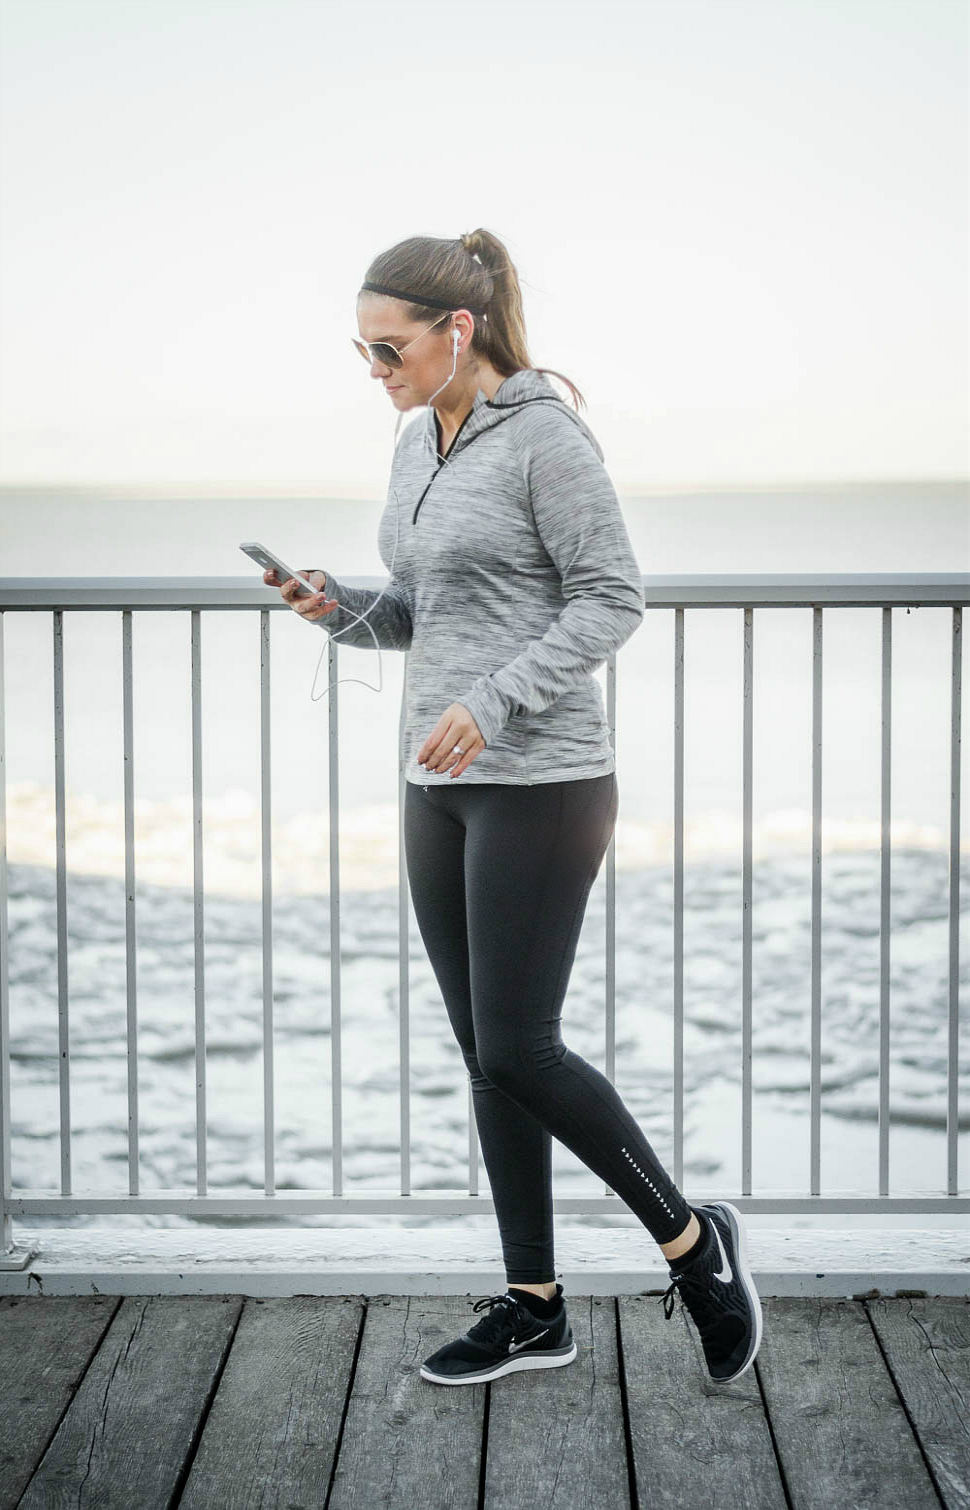 H&M-Sportswear-athletic-workout-clothes-rosecitystyleguide